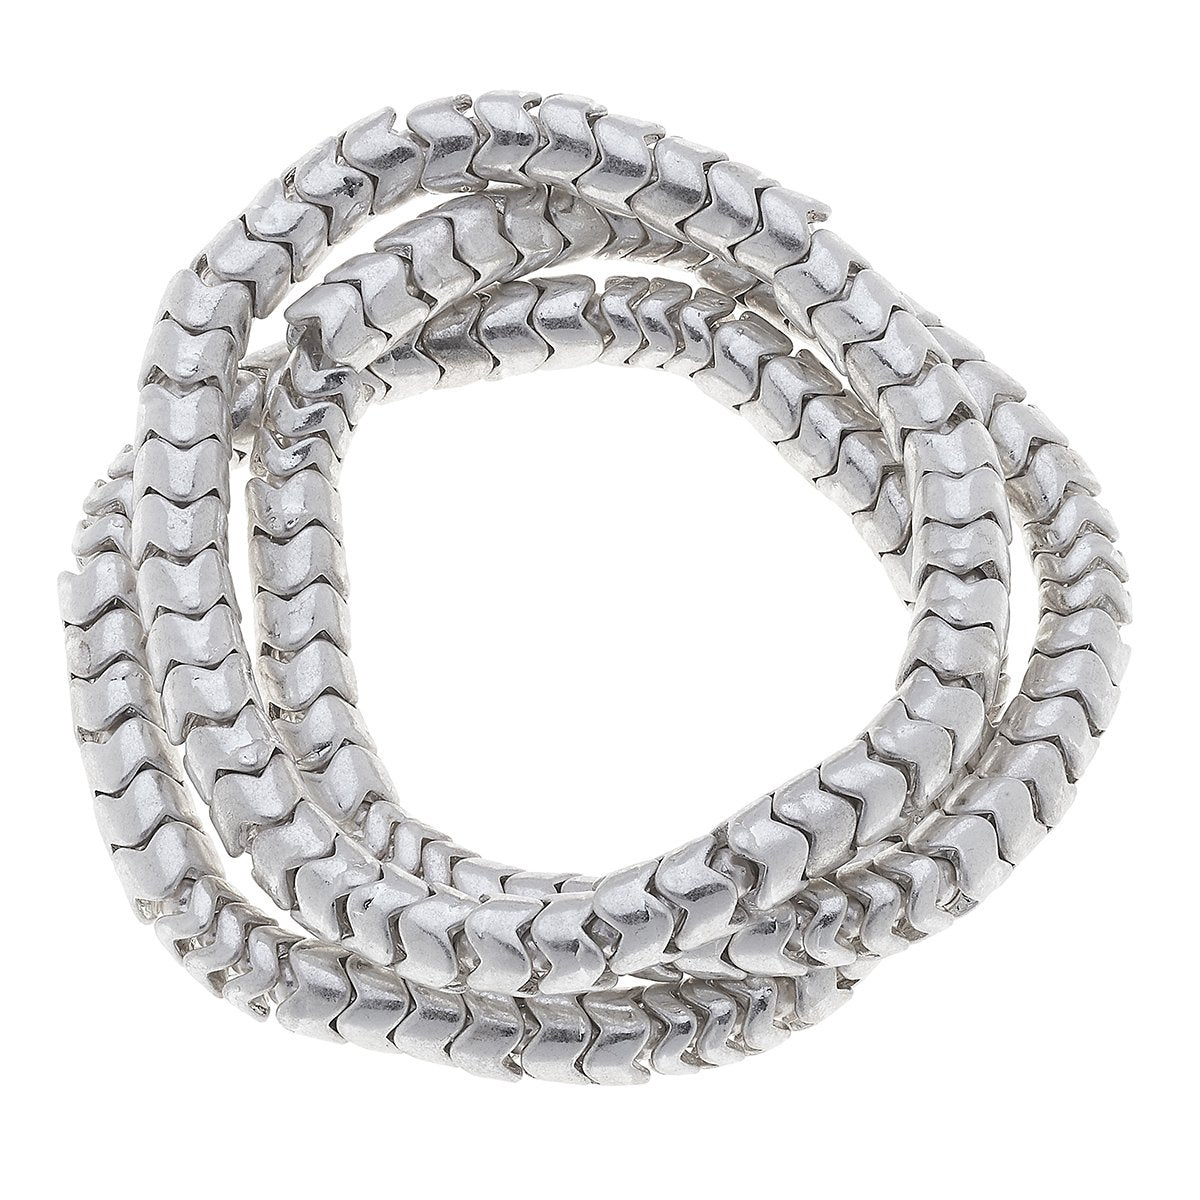 Kylie Chain Stretch Bracelets in Worn Silver (Set of 3)